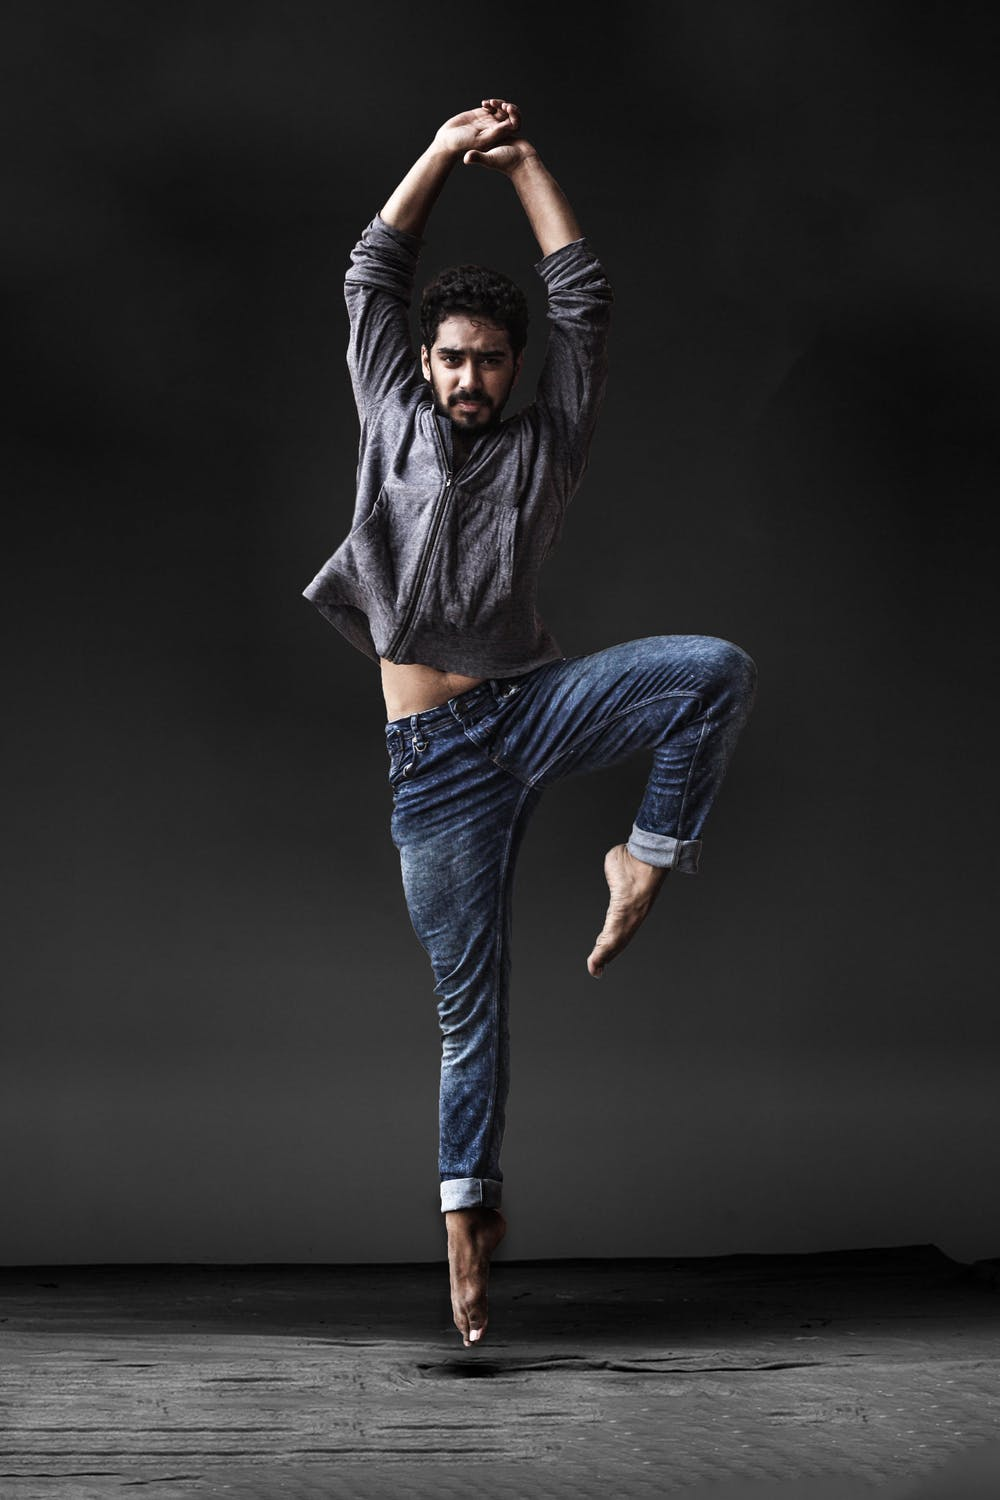 Indian Male Dancer